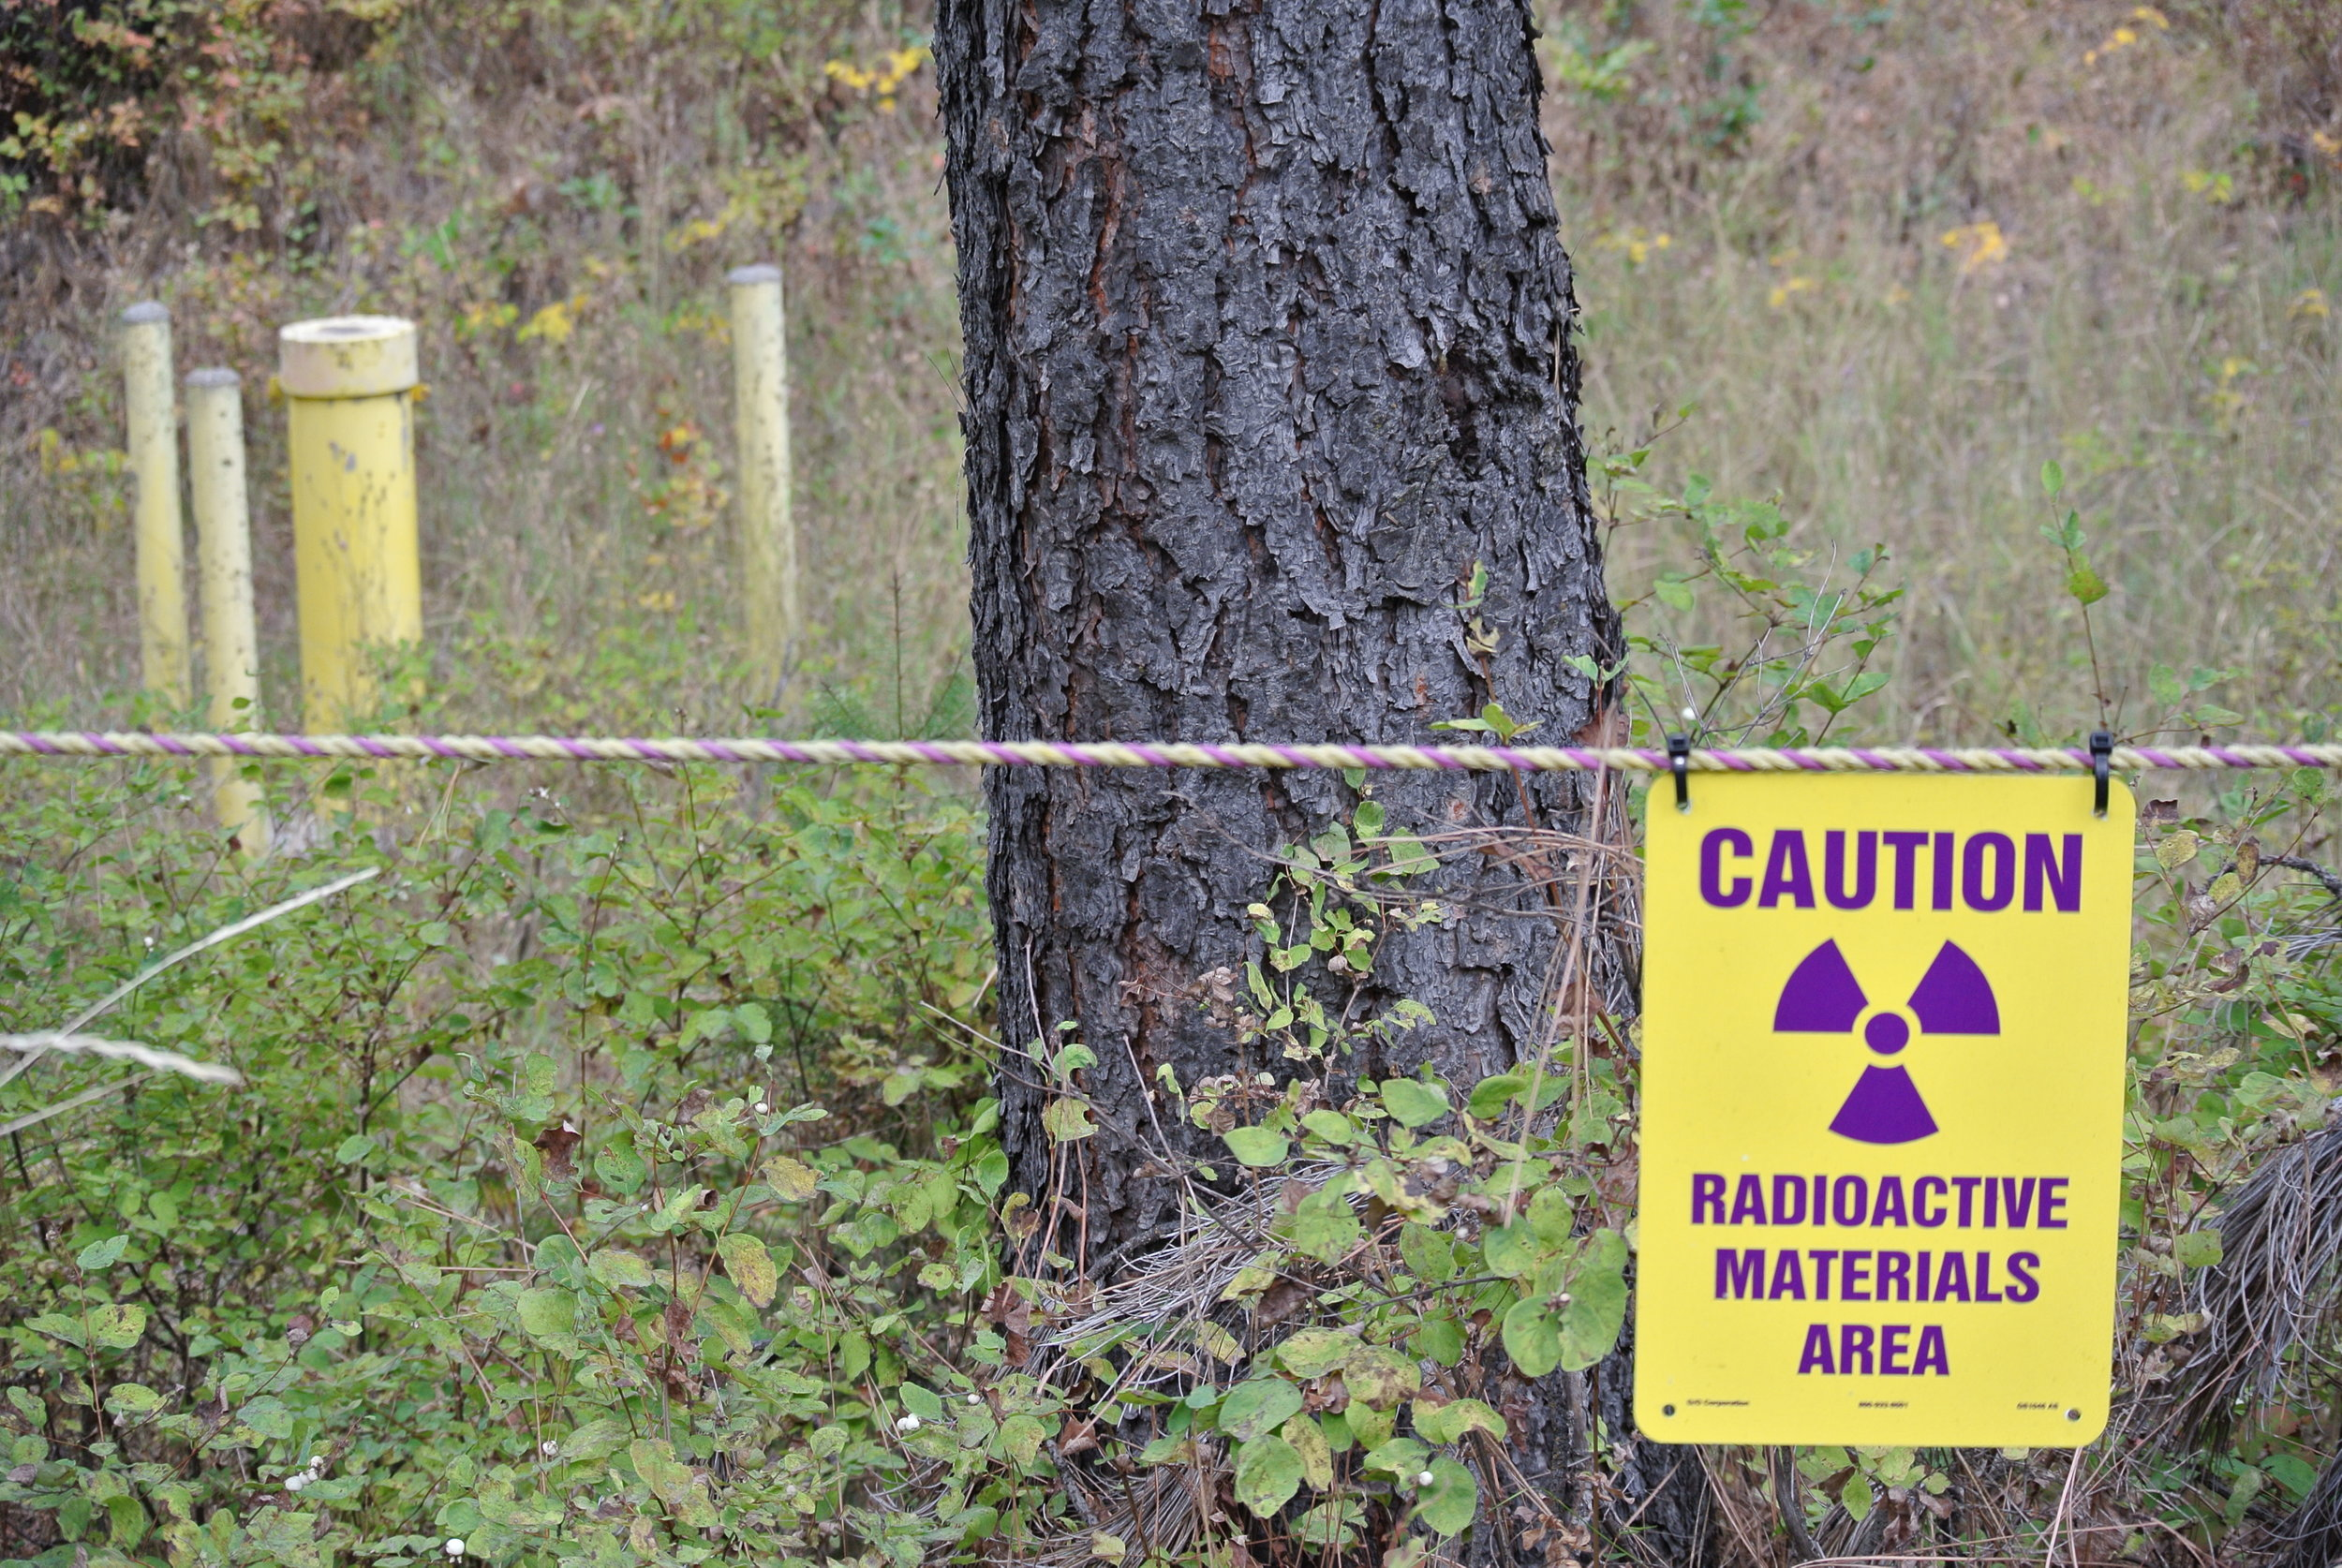 The Midnite Mine is designated a Superfudnd site because mining contaminants Radium-226, Lead 210, and Uranium are found in concentrations that would cause cancer in greater than 1 in 10,000 people.